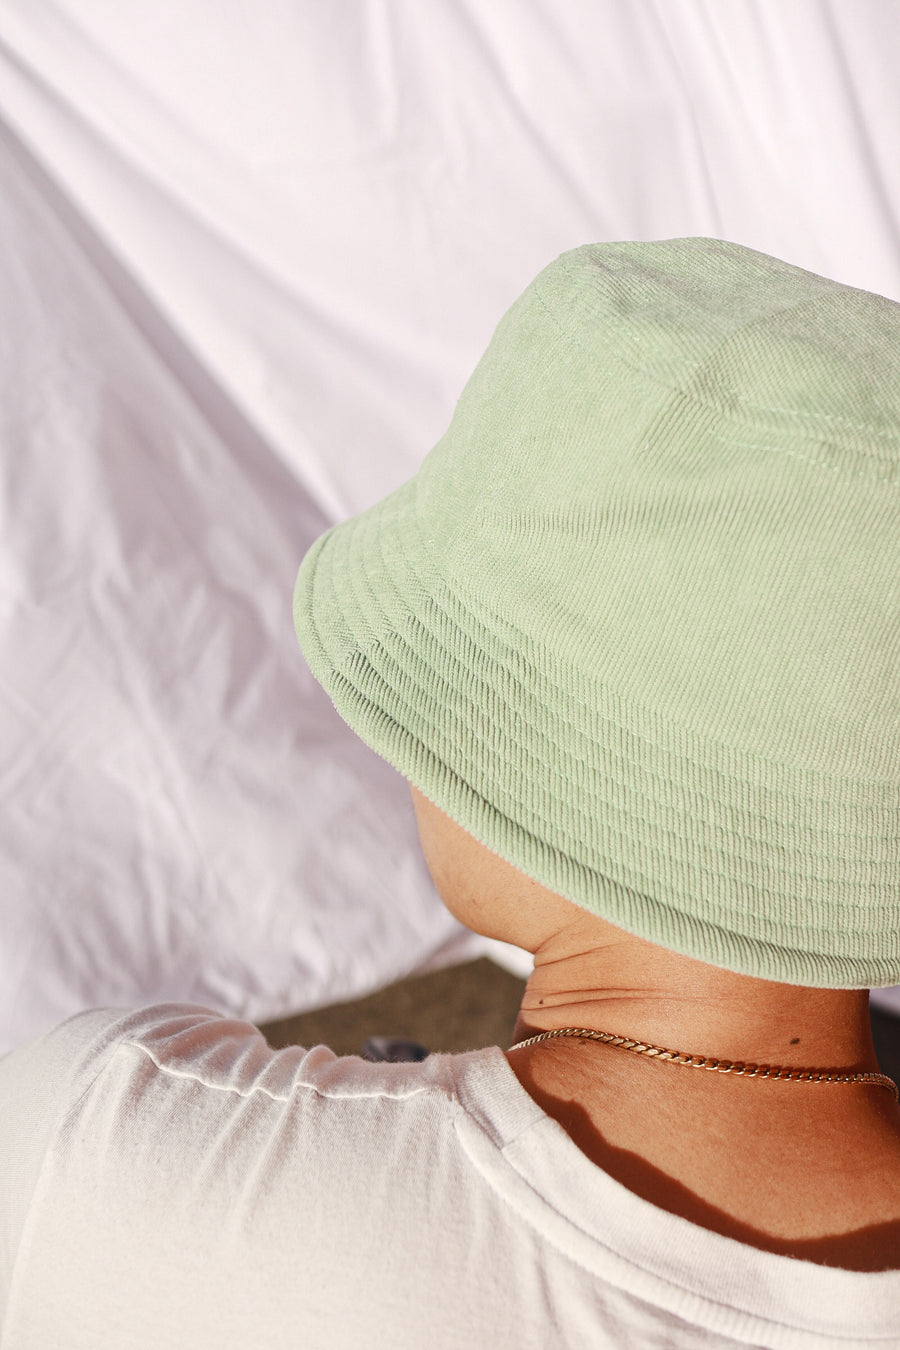 Matcha Latte Bucket Hat - Thea